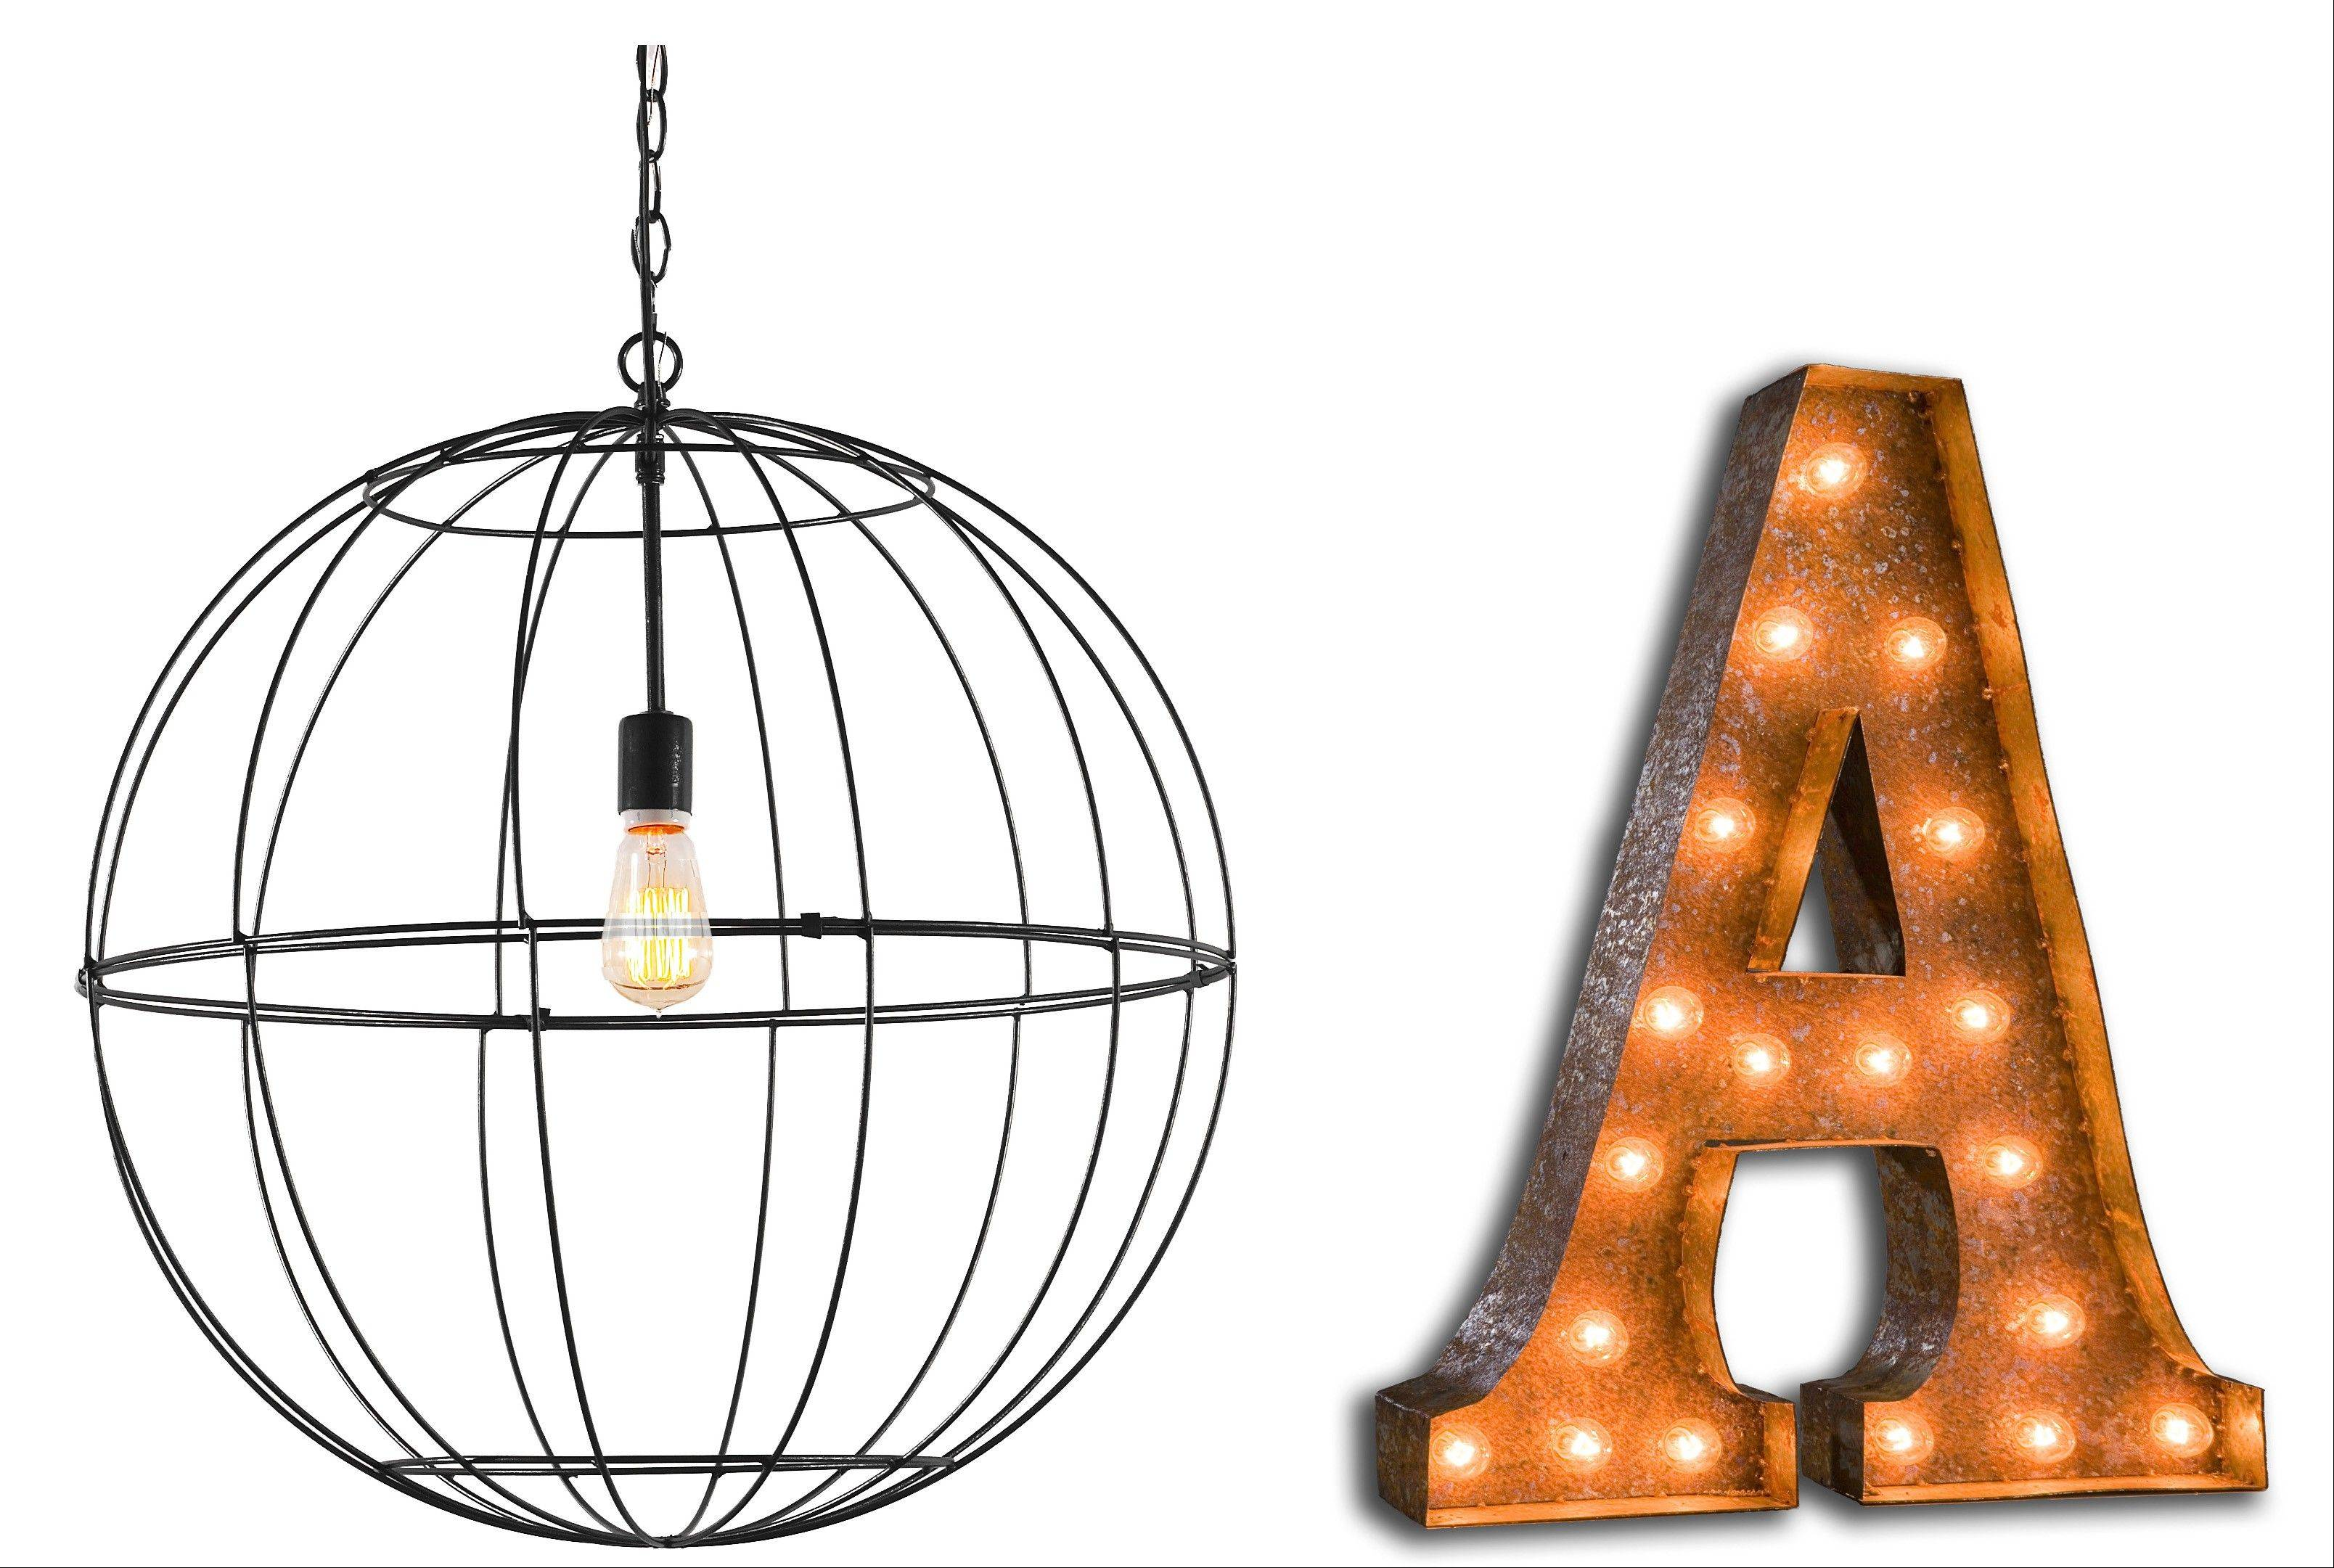 Lighting can also add an artistic touch to a room, if it has eye-catching qualities such as the Young House Love Wire Globe Lantern and the Vintage Marquee Lights in letters or numbers.